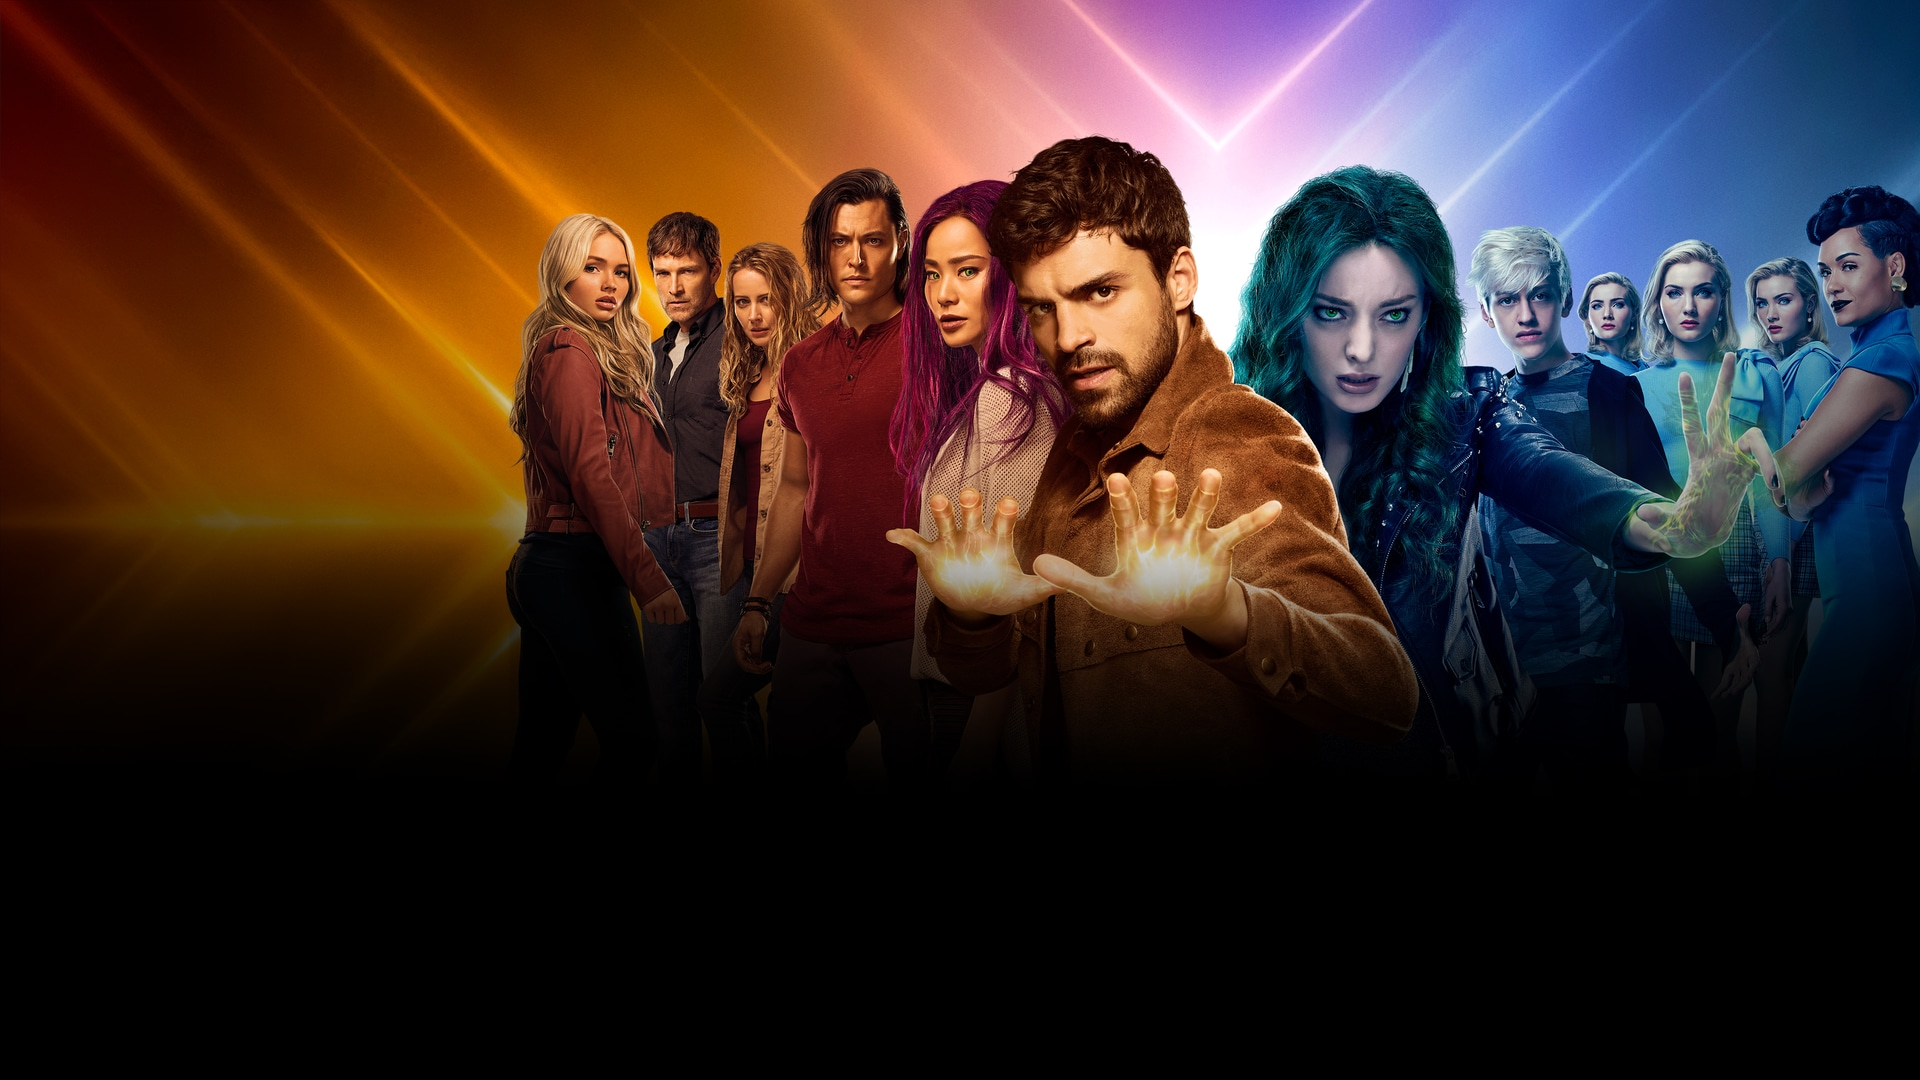 About the Show | The Gifted on FOX